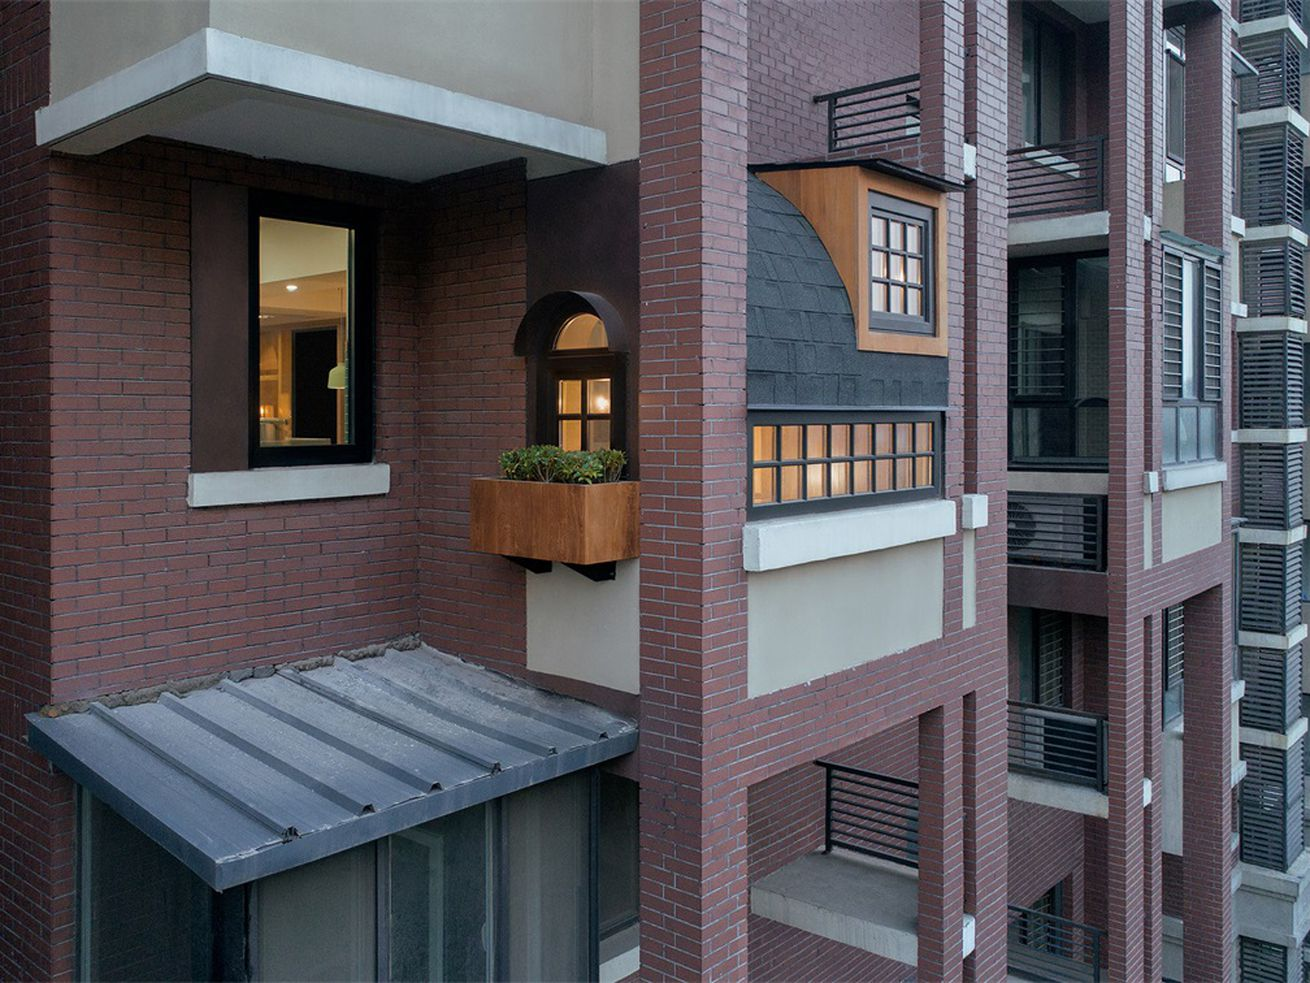 Apartment balcony transformed into a magical Japanese teahouse